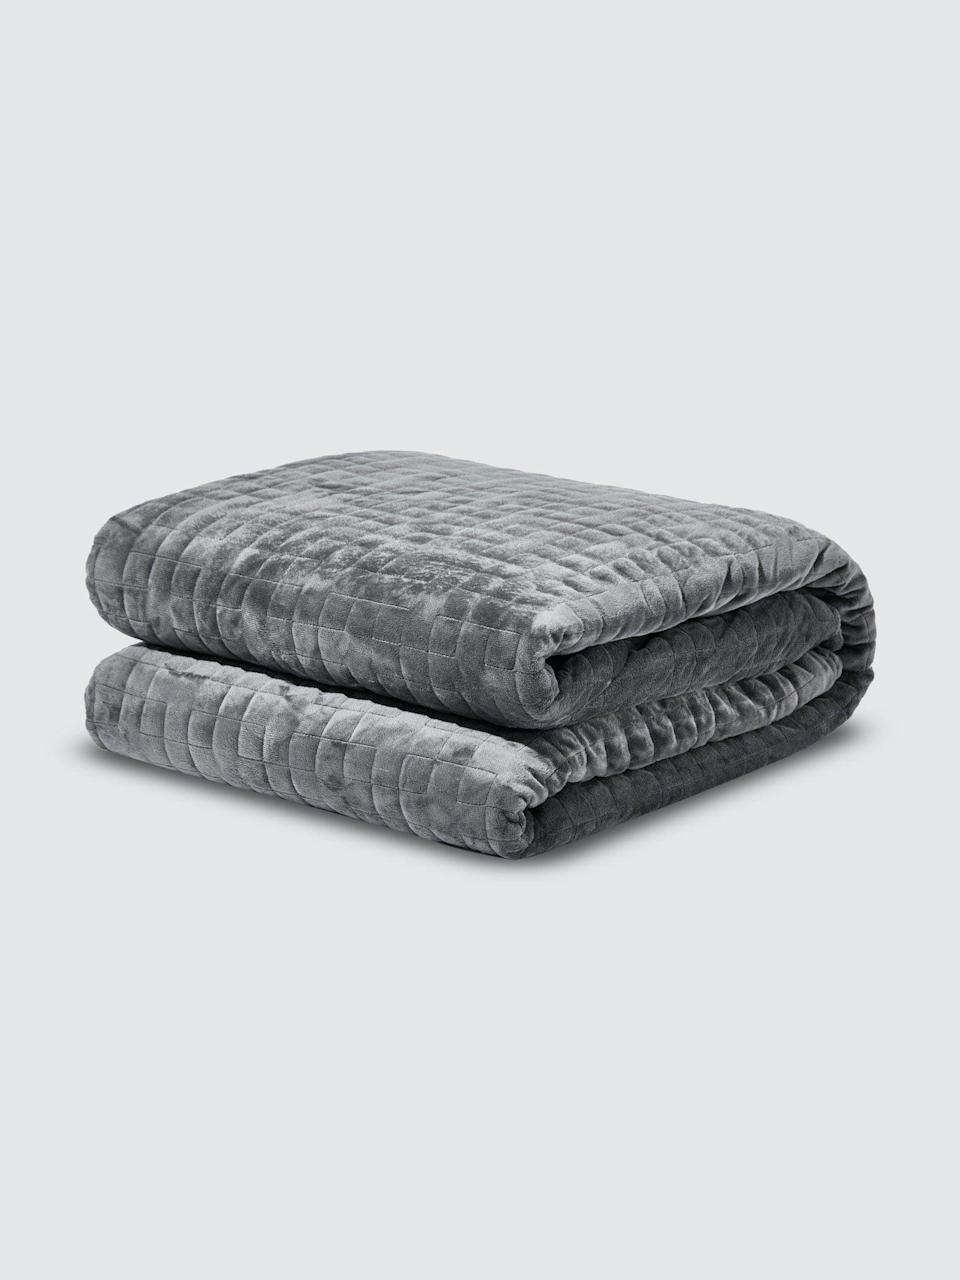 """<h2>Gravity Blankets</h2><br>These paradoxical bedding staples will put you under pressure in all the right ways. Weighted sleep masks, cozy comforters, cooling blankets, crisp sheets, and more are up to 20% off. <br><br><em>Shop</em> <a href=""""https://www.verishop.com/brand/gravity"""" rel=""""nofollow noopener"""" target=""""_blank"""" data-ylk=""""slk:Gravity Blankets"""" class=""""link rapid-noclick-resp""""><strong><em>Gravity Blankets</em></strong></a><br><br><strong>Gravity</strong> Zip Blanket, $, available at <a href=""""https://go.skimresources.com/?id=30283X879131&url=https%3A%2F%2Fshop-links.co%2F1735359947246960532"""" rel=""""nofollow noopener"""" target=""""_blank"""" data-ylk=""""slk:Verishop"""" class=""""link rapid-noclick-resp"""">Verishop</a>"""